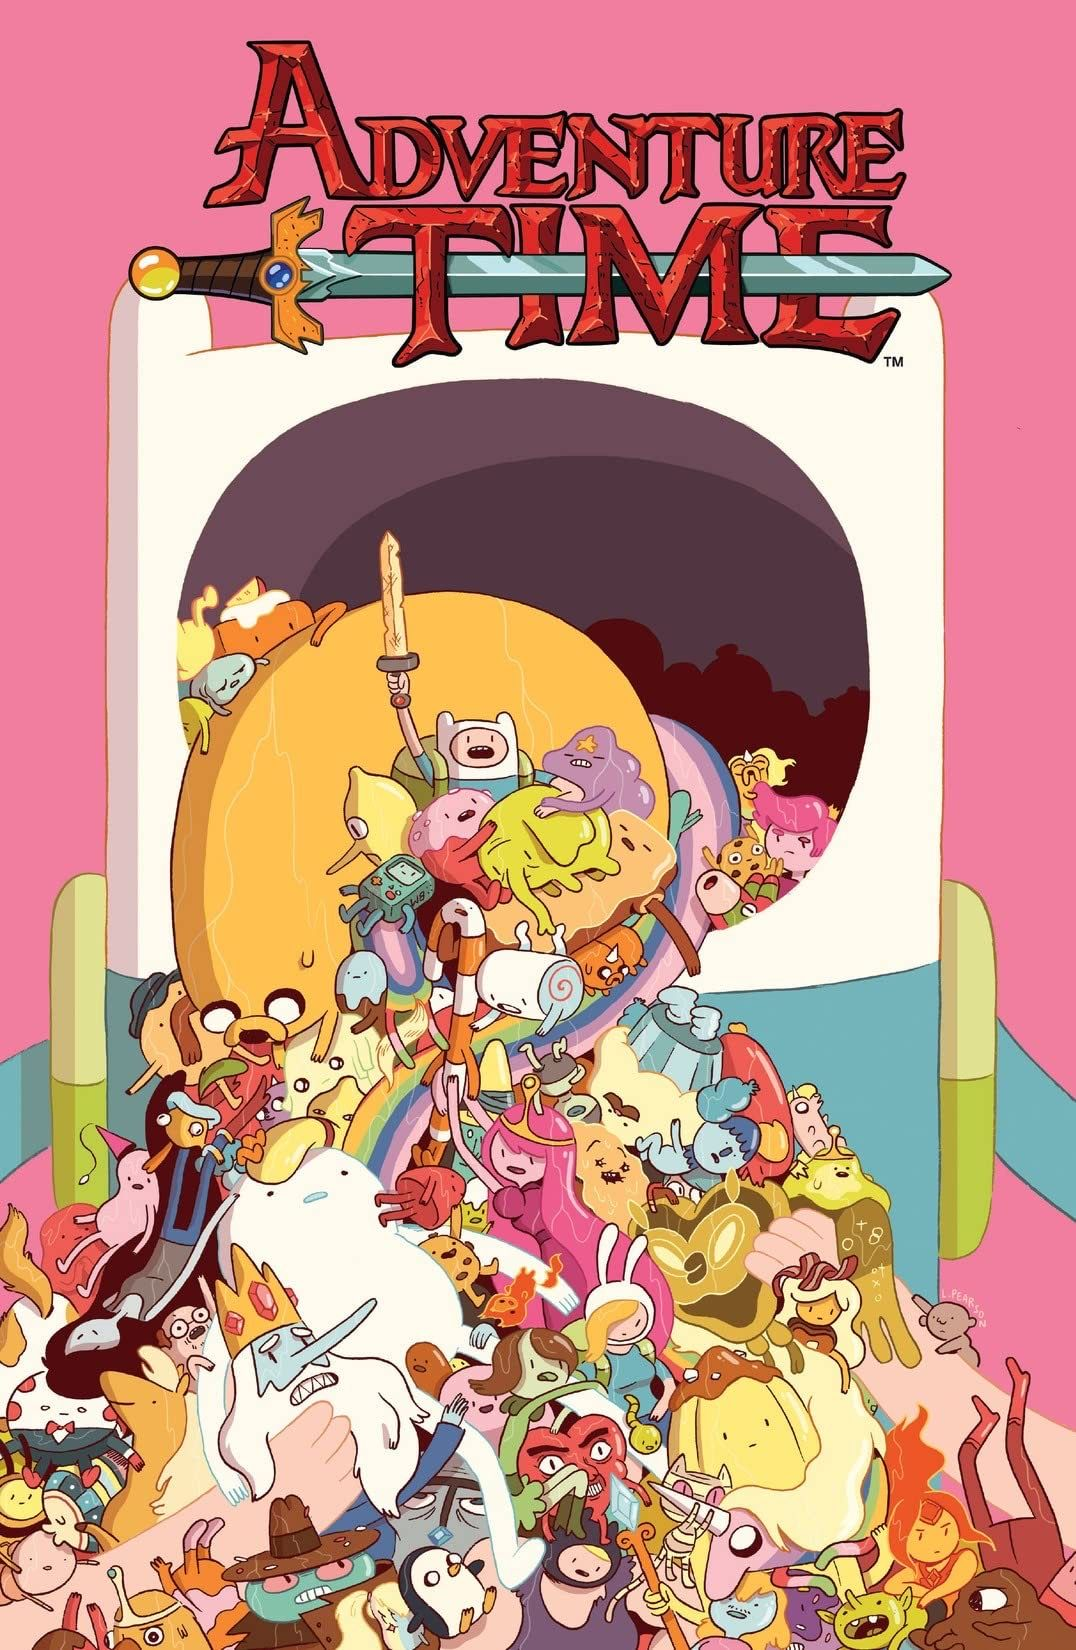 Pin by Metzlilopez on Anime/art in 2020 Adventure time